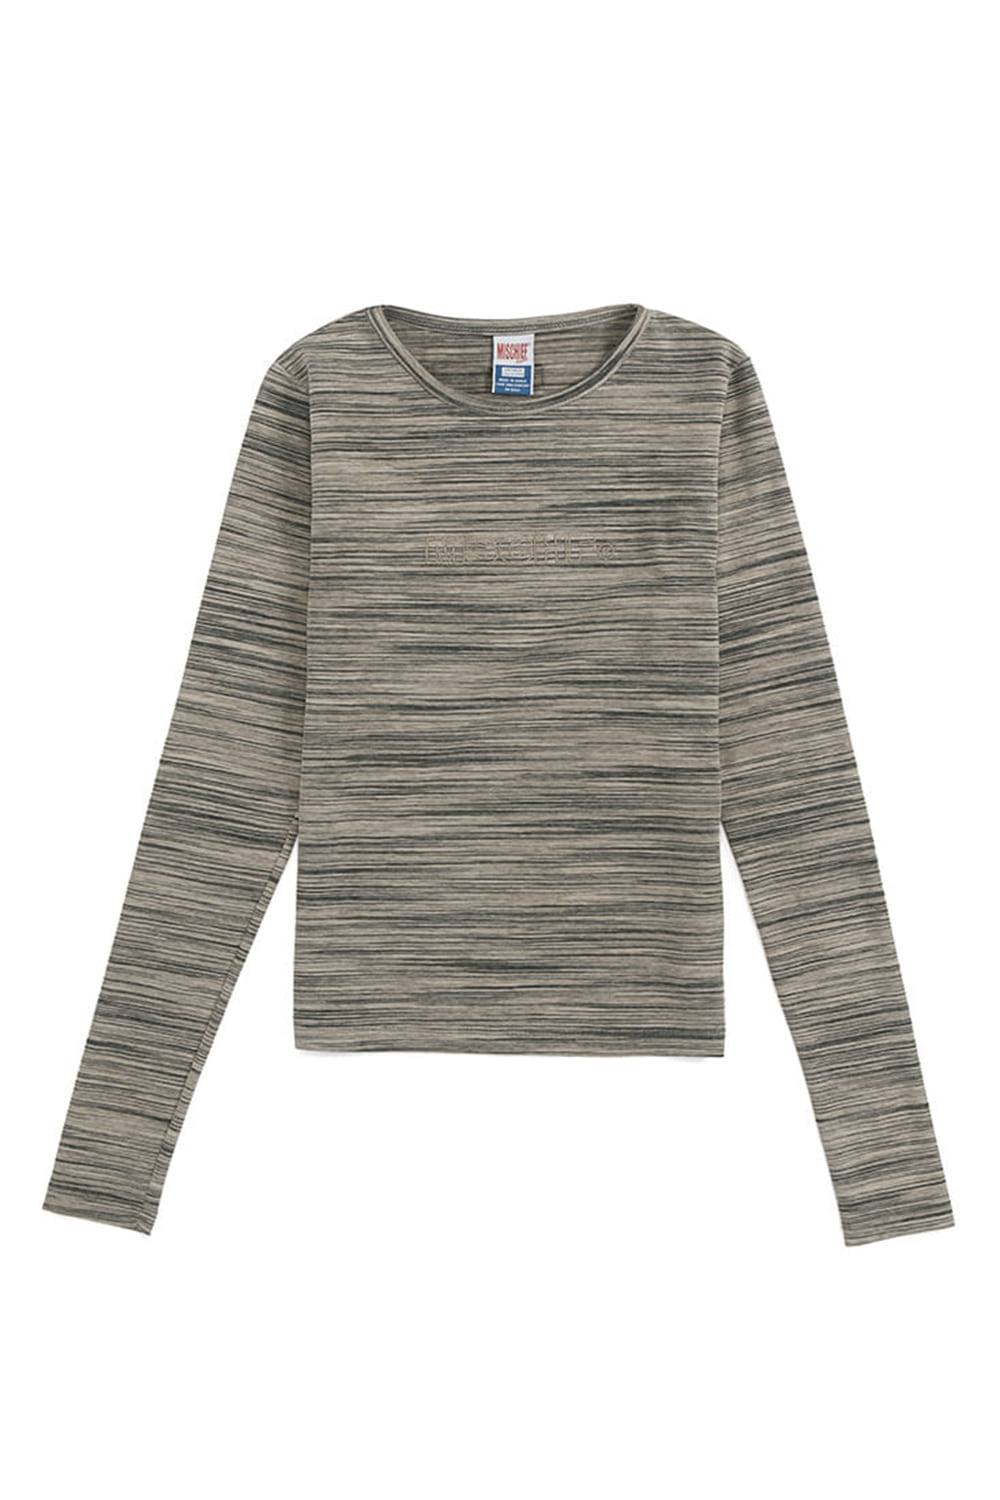 FITTED STRIPE LONG SLEEVE_beige/gray